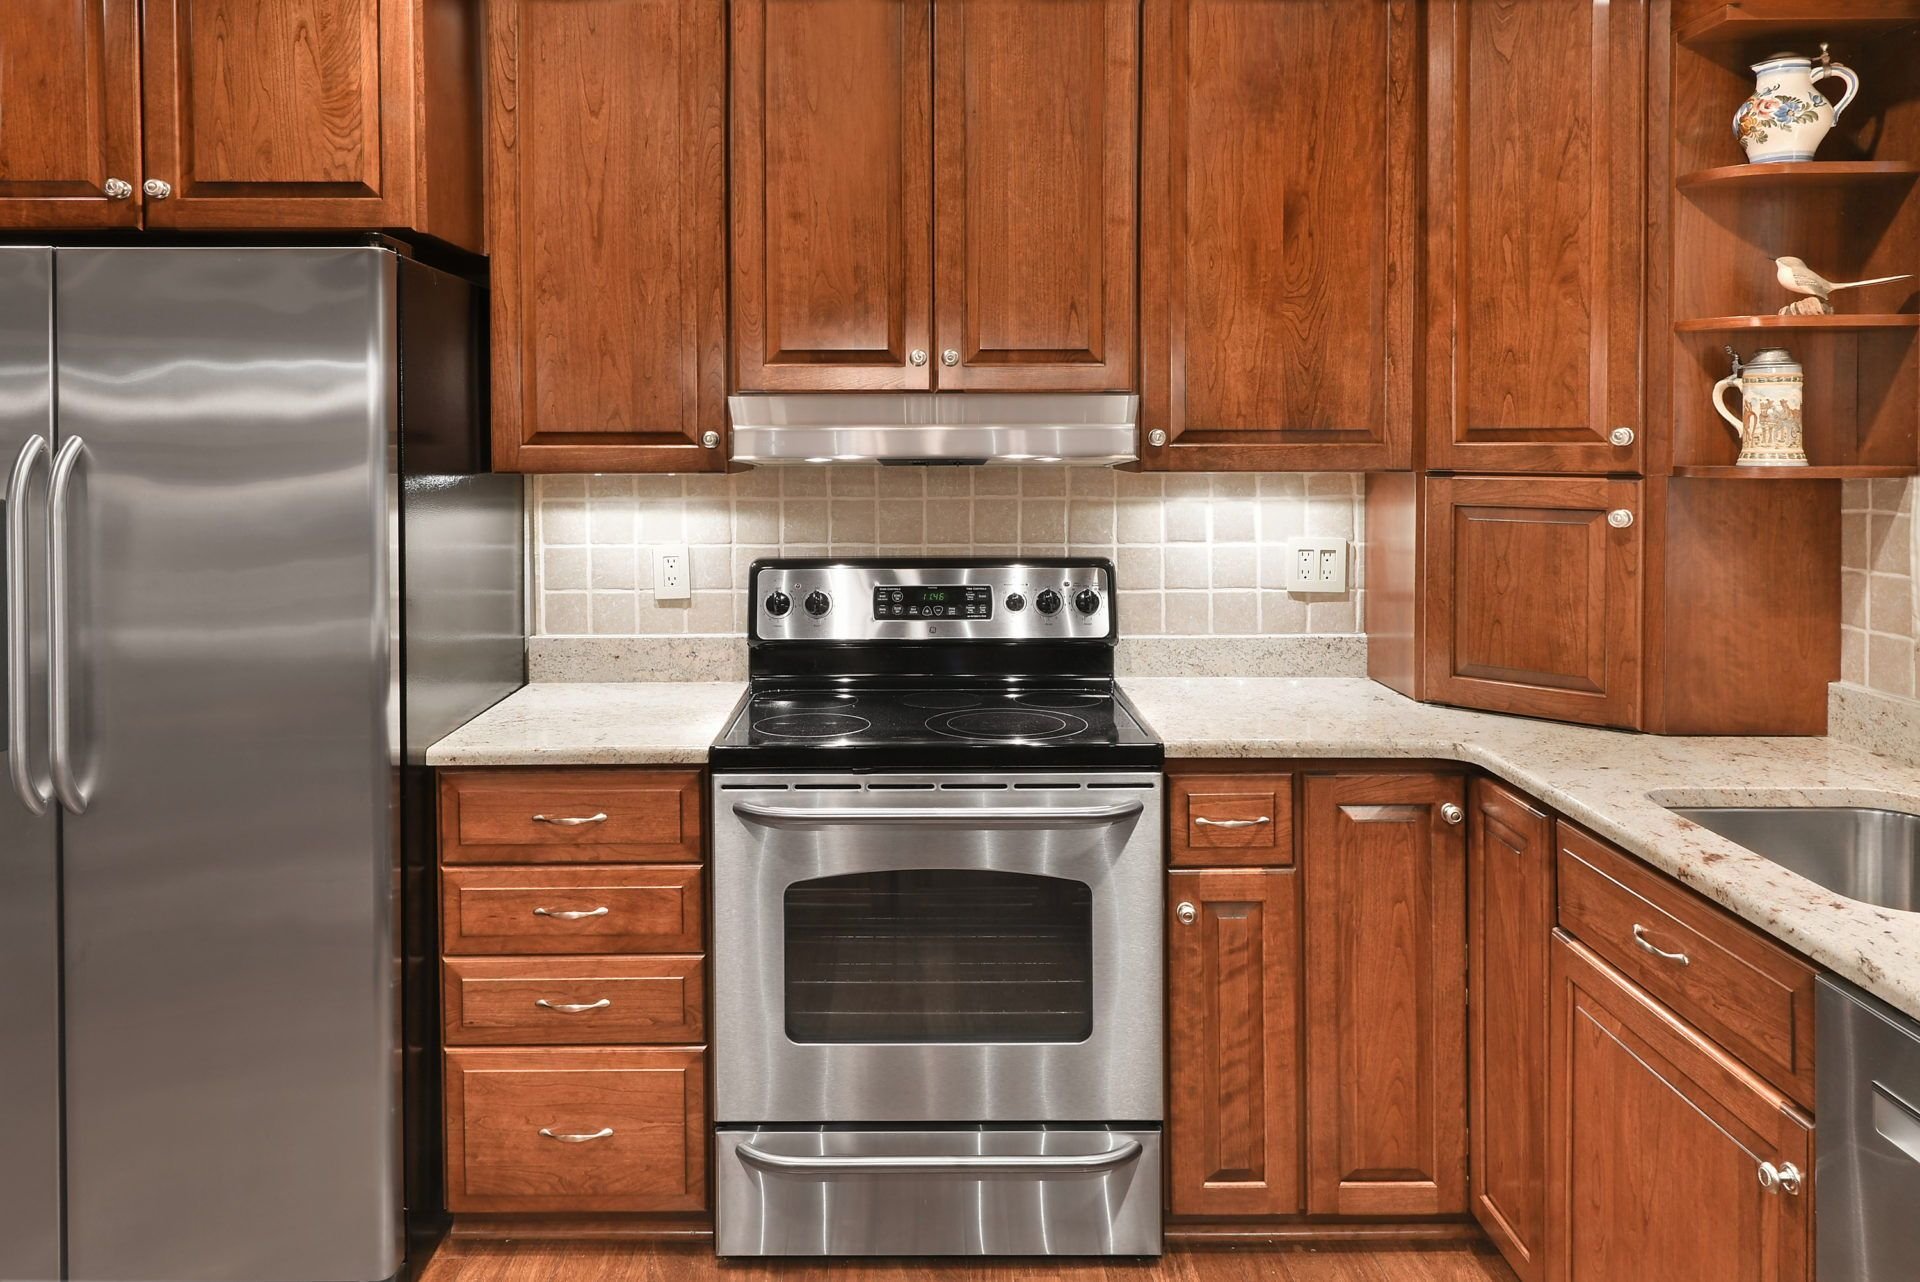 Traditional Chestnut Cherry Kitchen In Reston Va K S Renewal Systems Llc In 2020 Kitchen Bold Kitchen U Shaped Kitchen